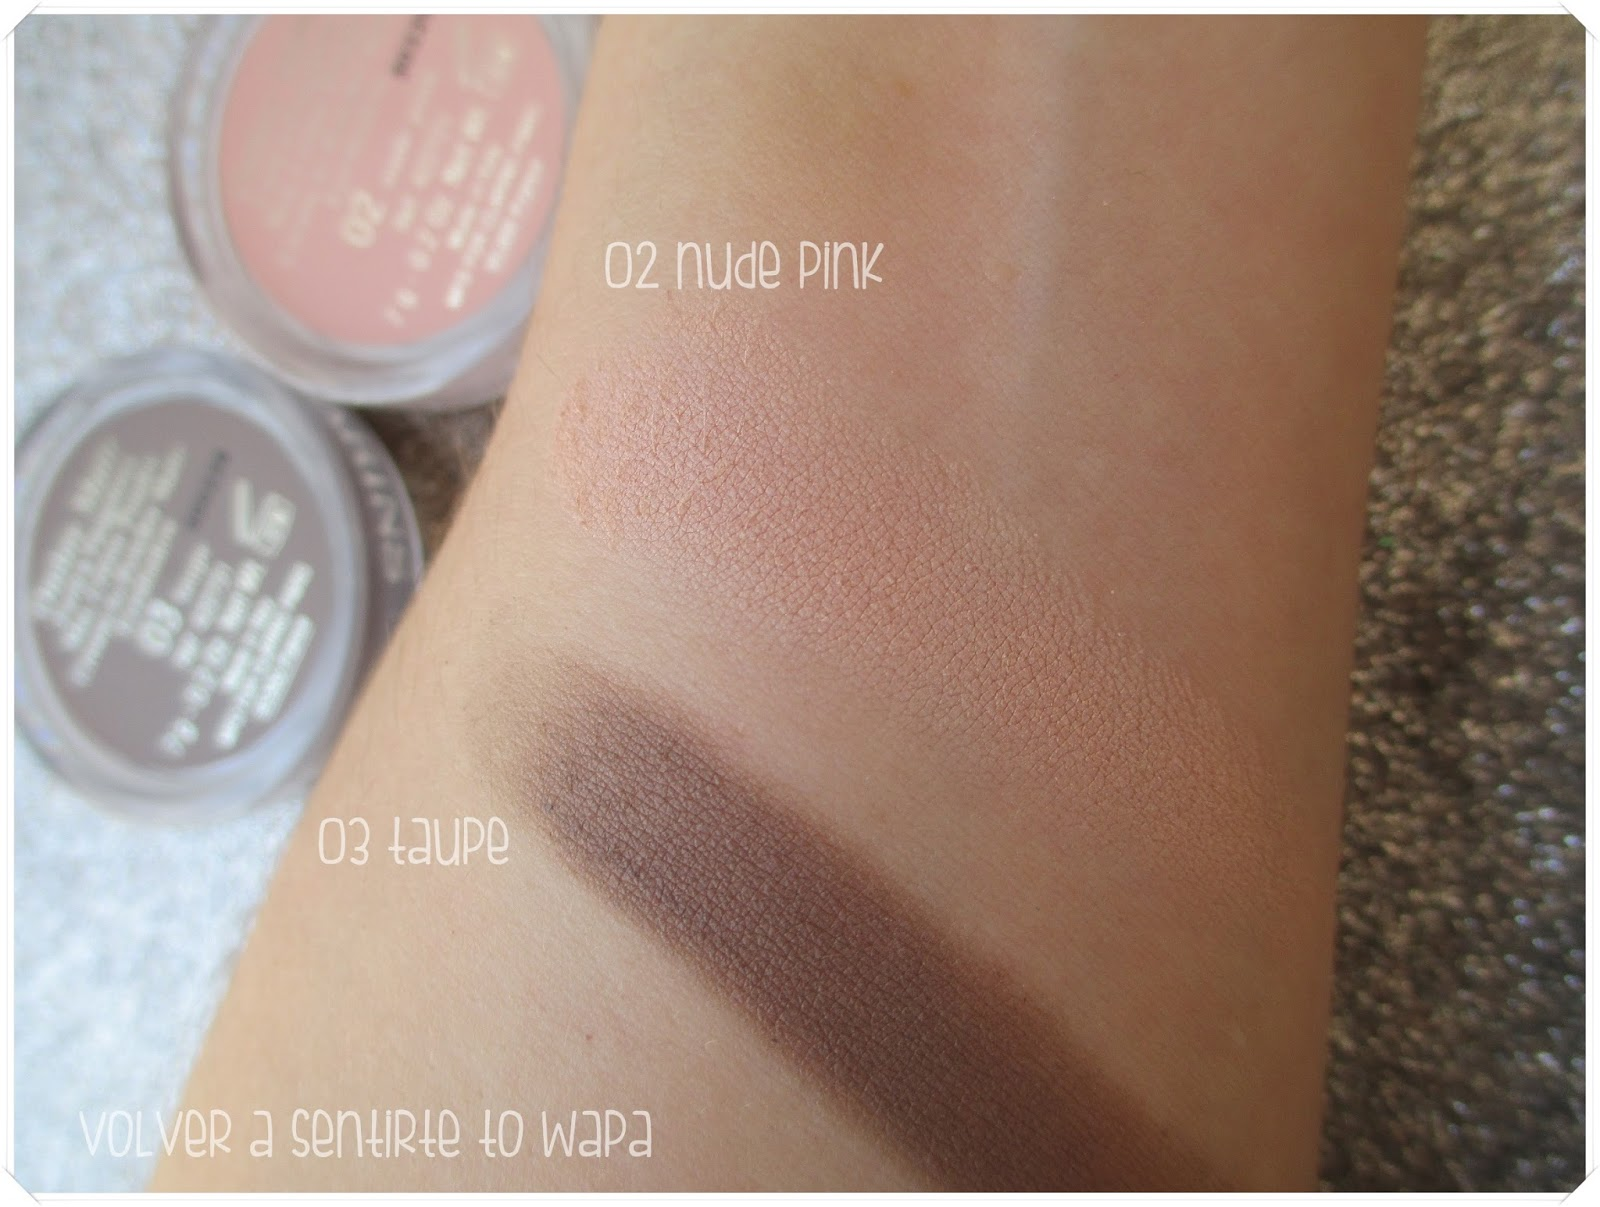 Ombre Matte de Clarins - 02 nude pink y 03 taupe - Swatches